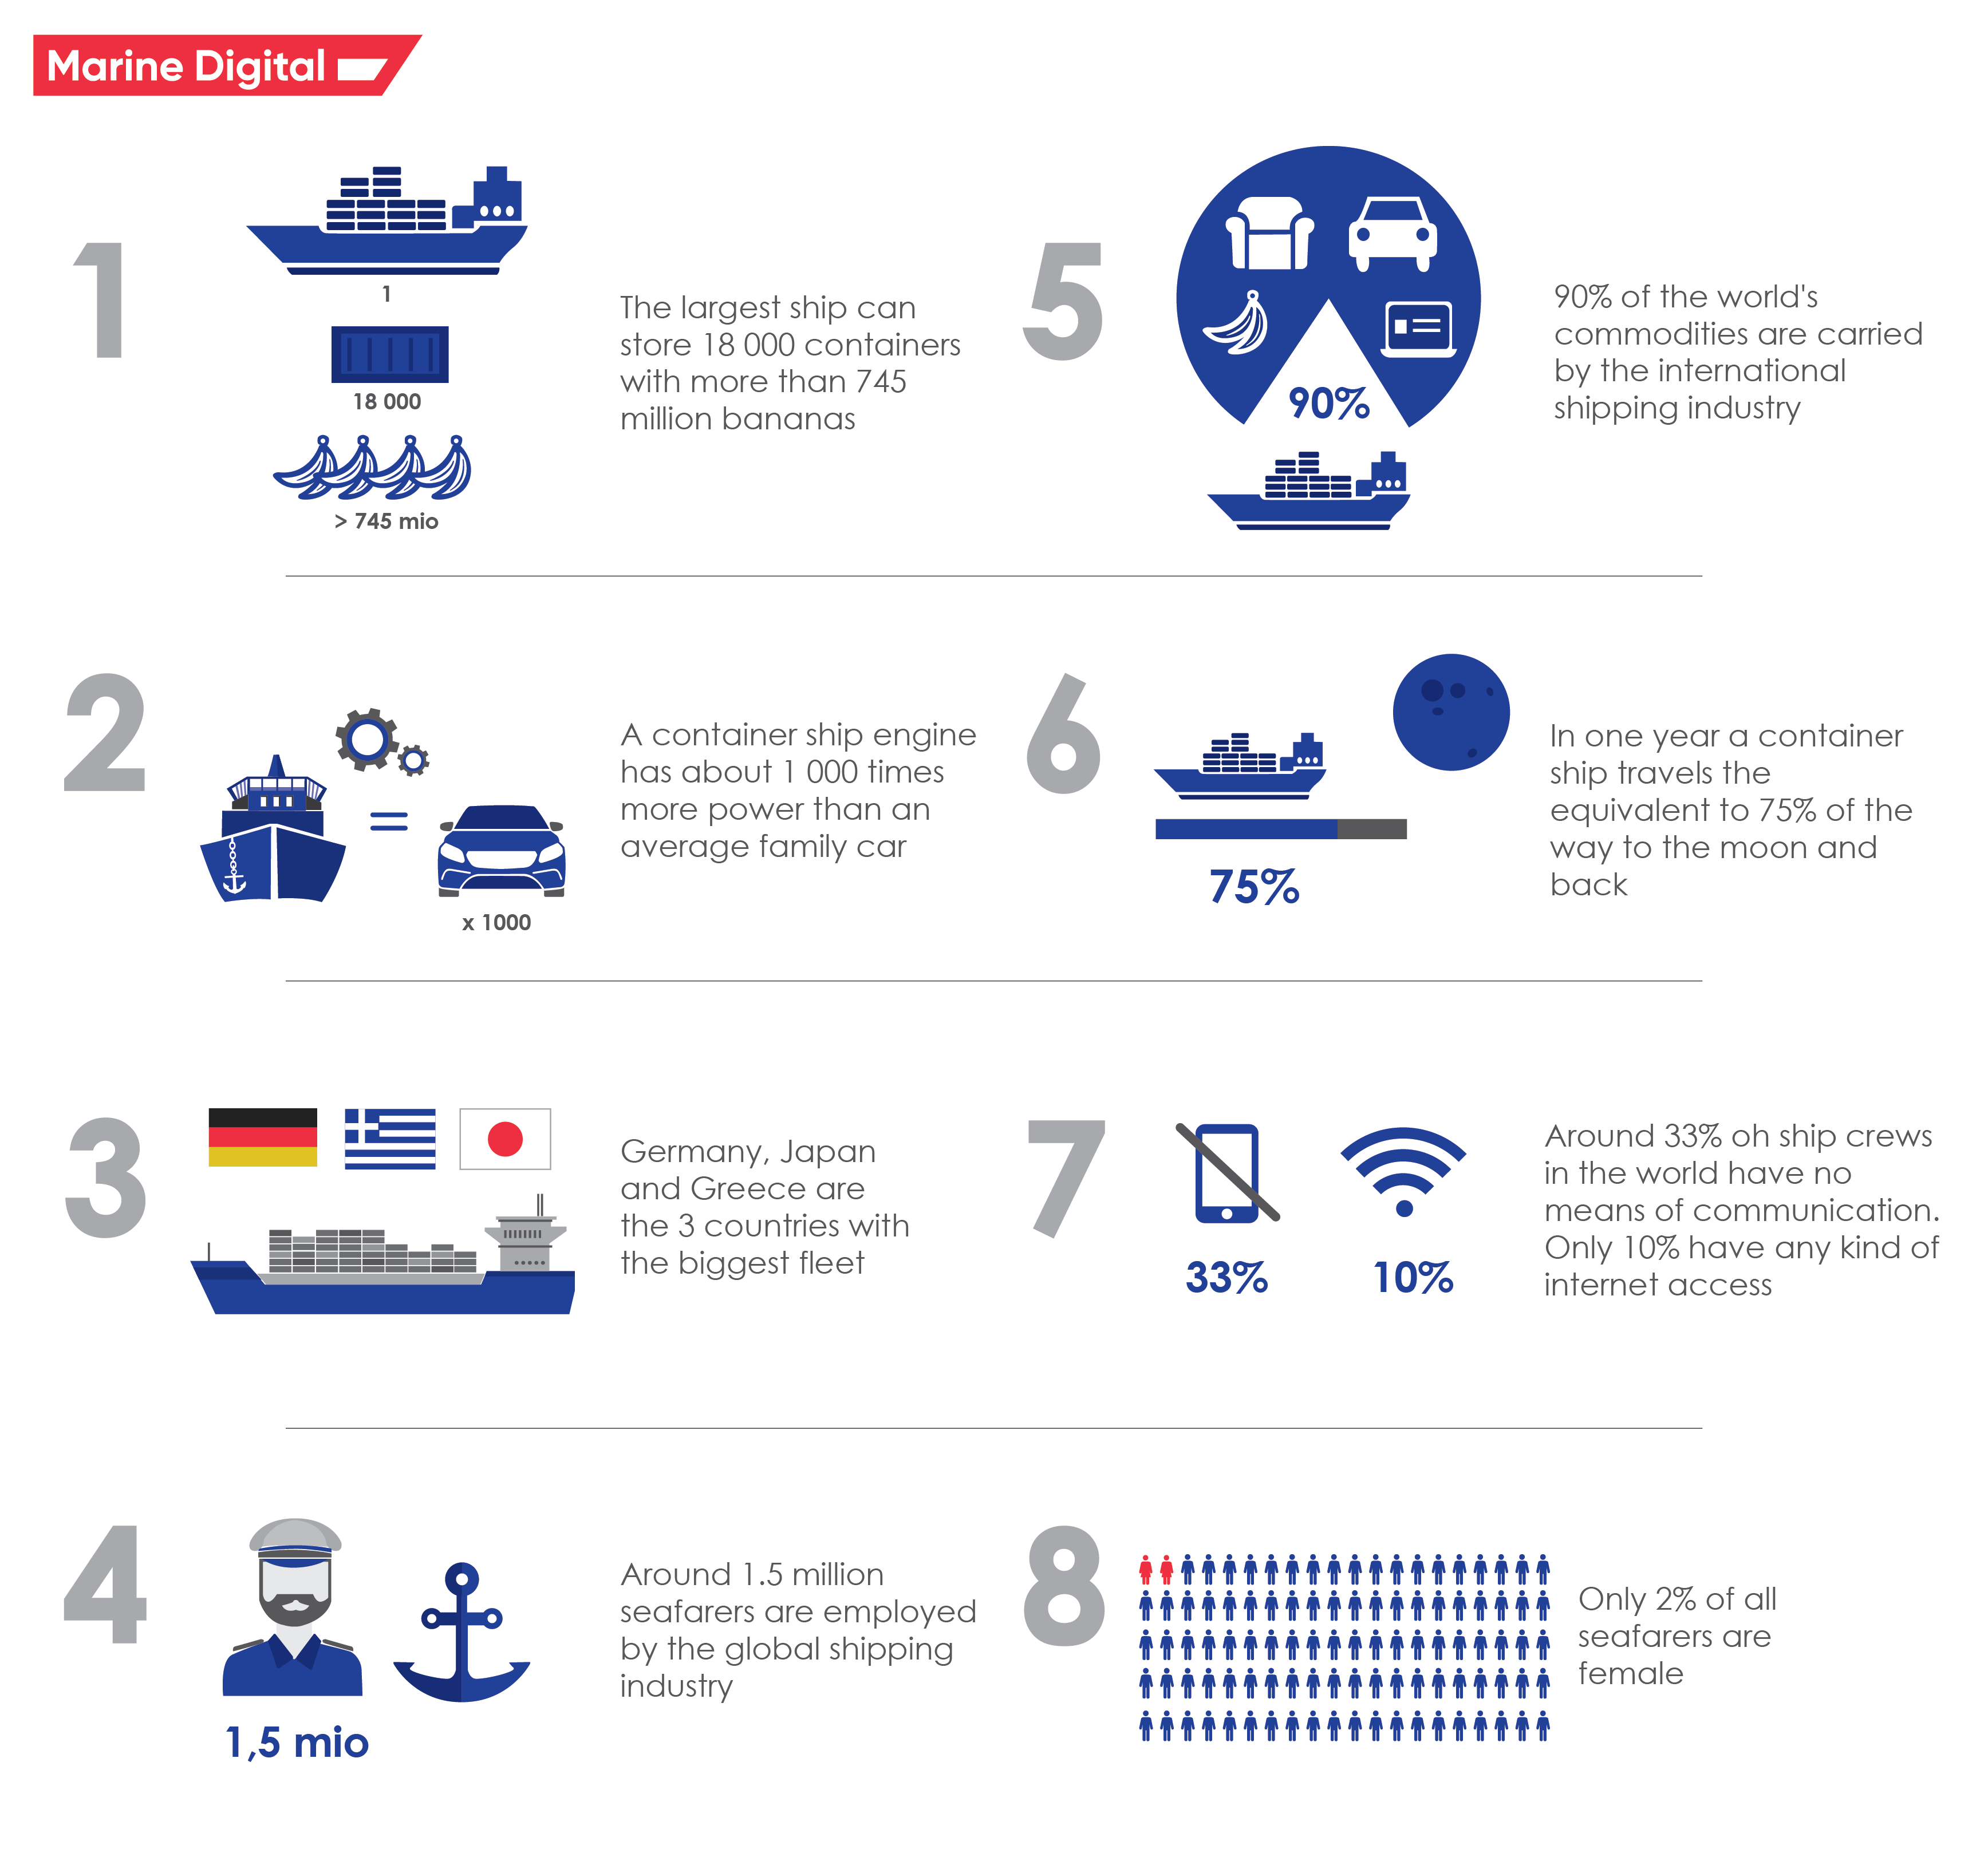 Interesting facts about the maritime industry